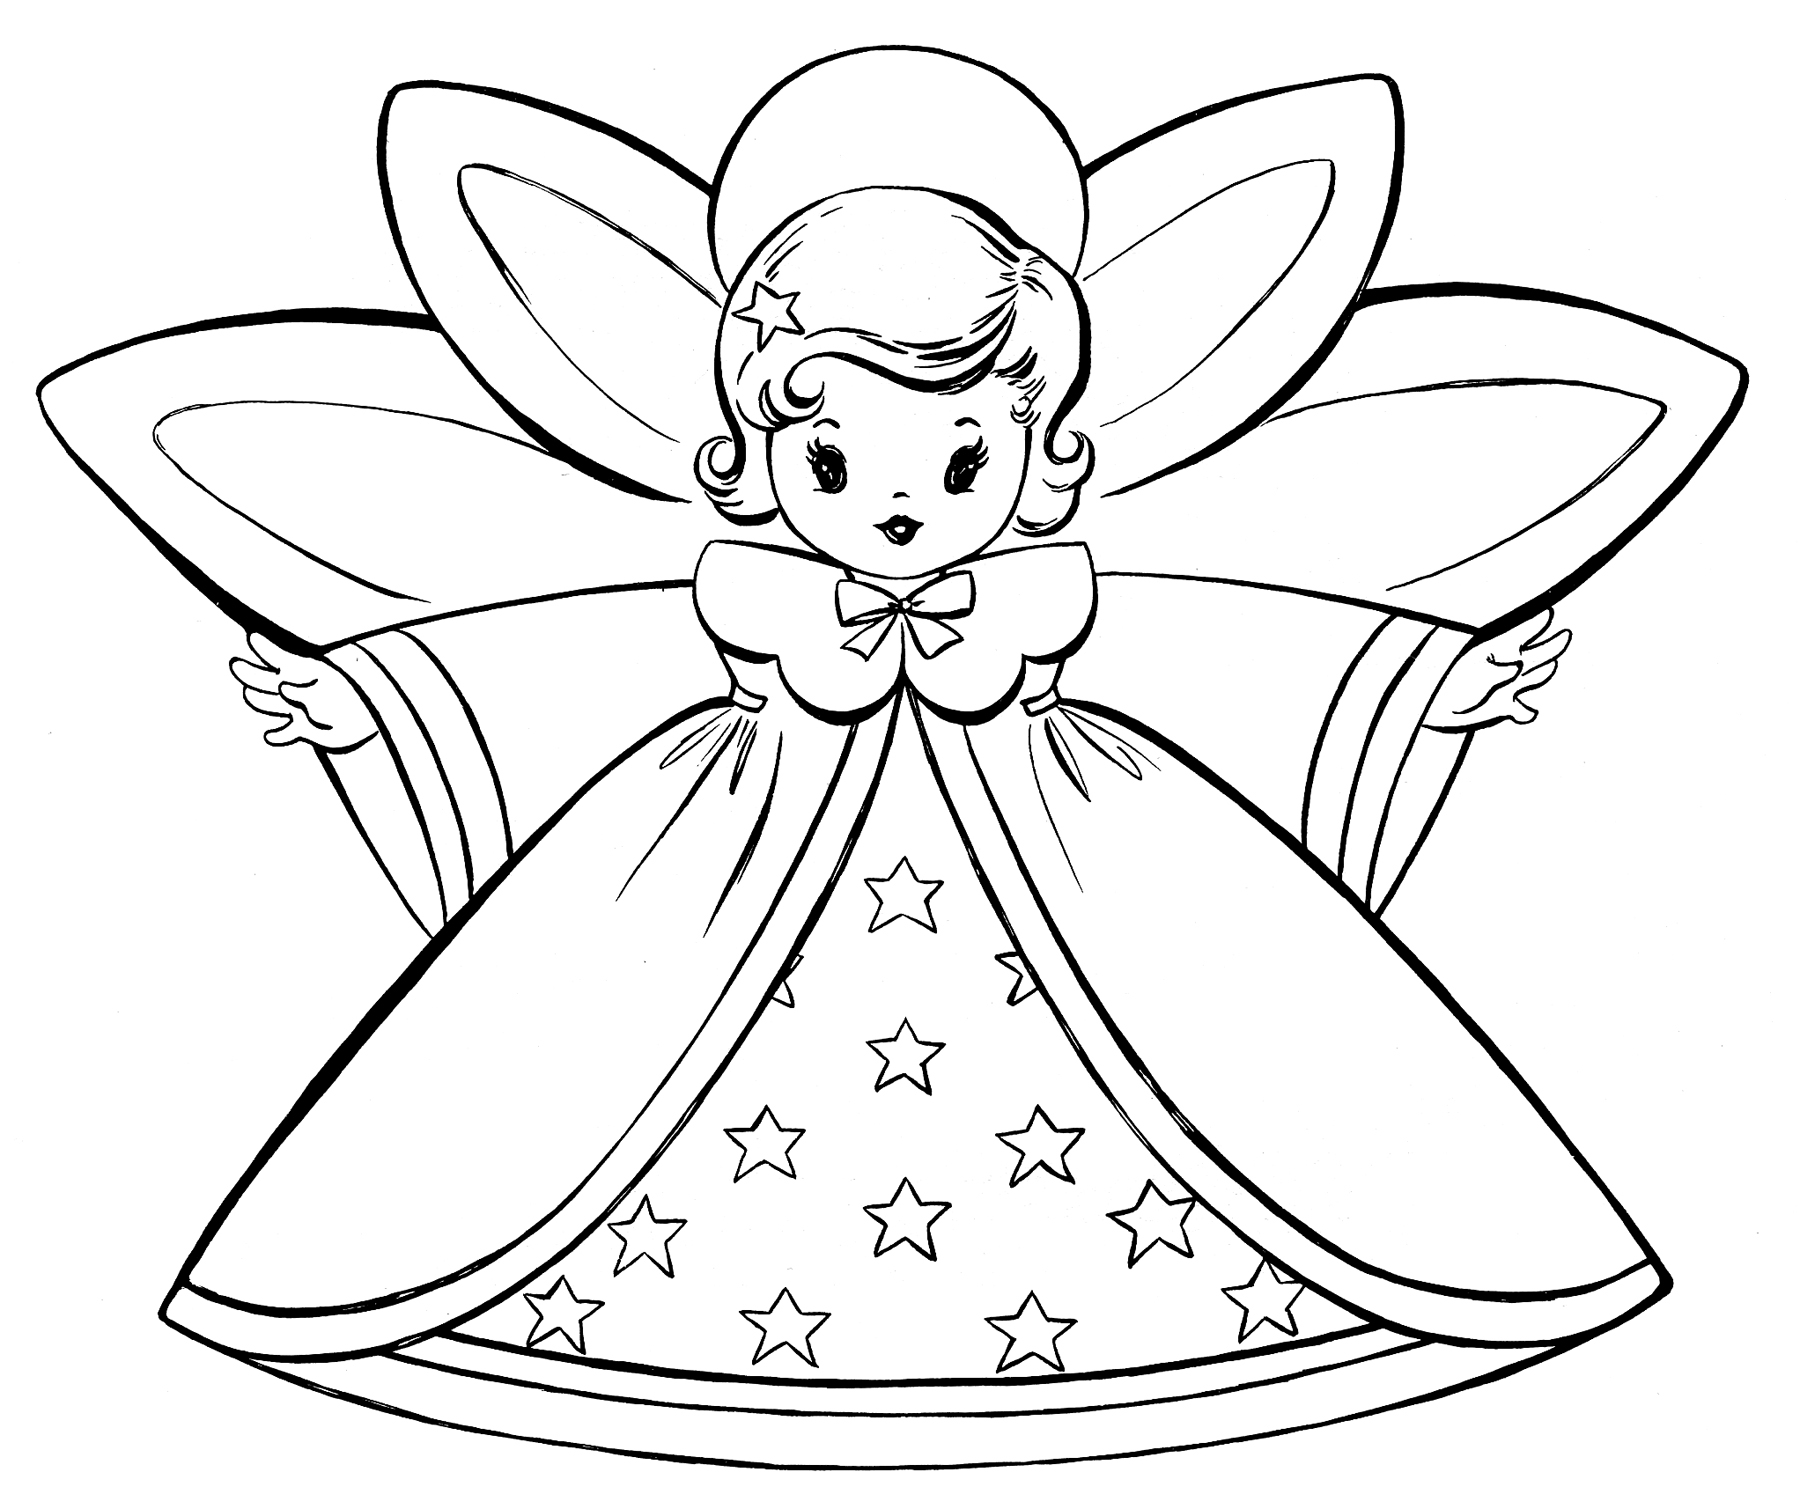 tiny Angel coloring page